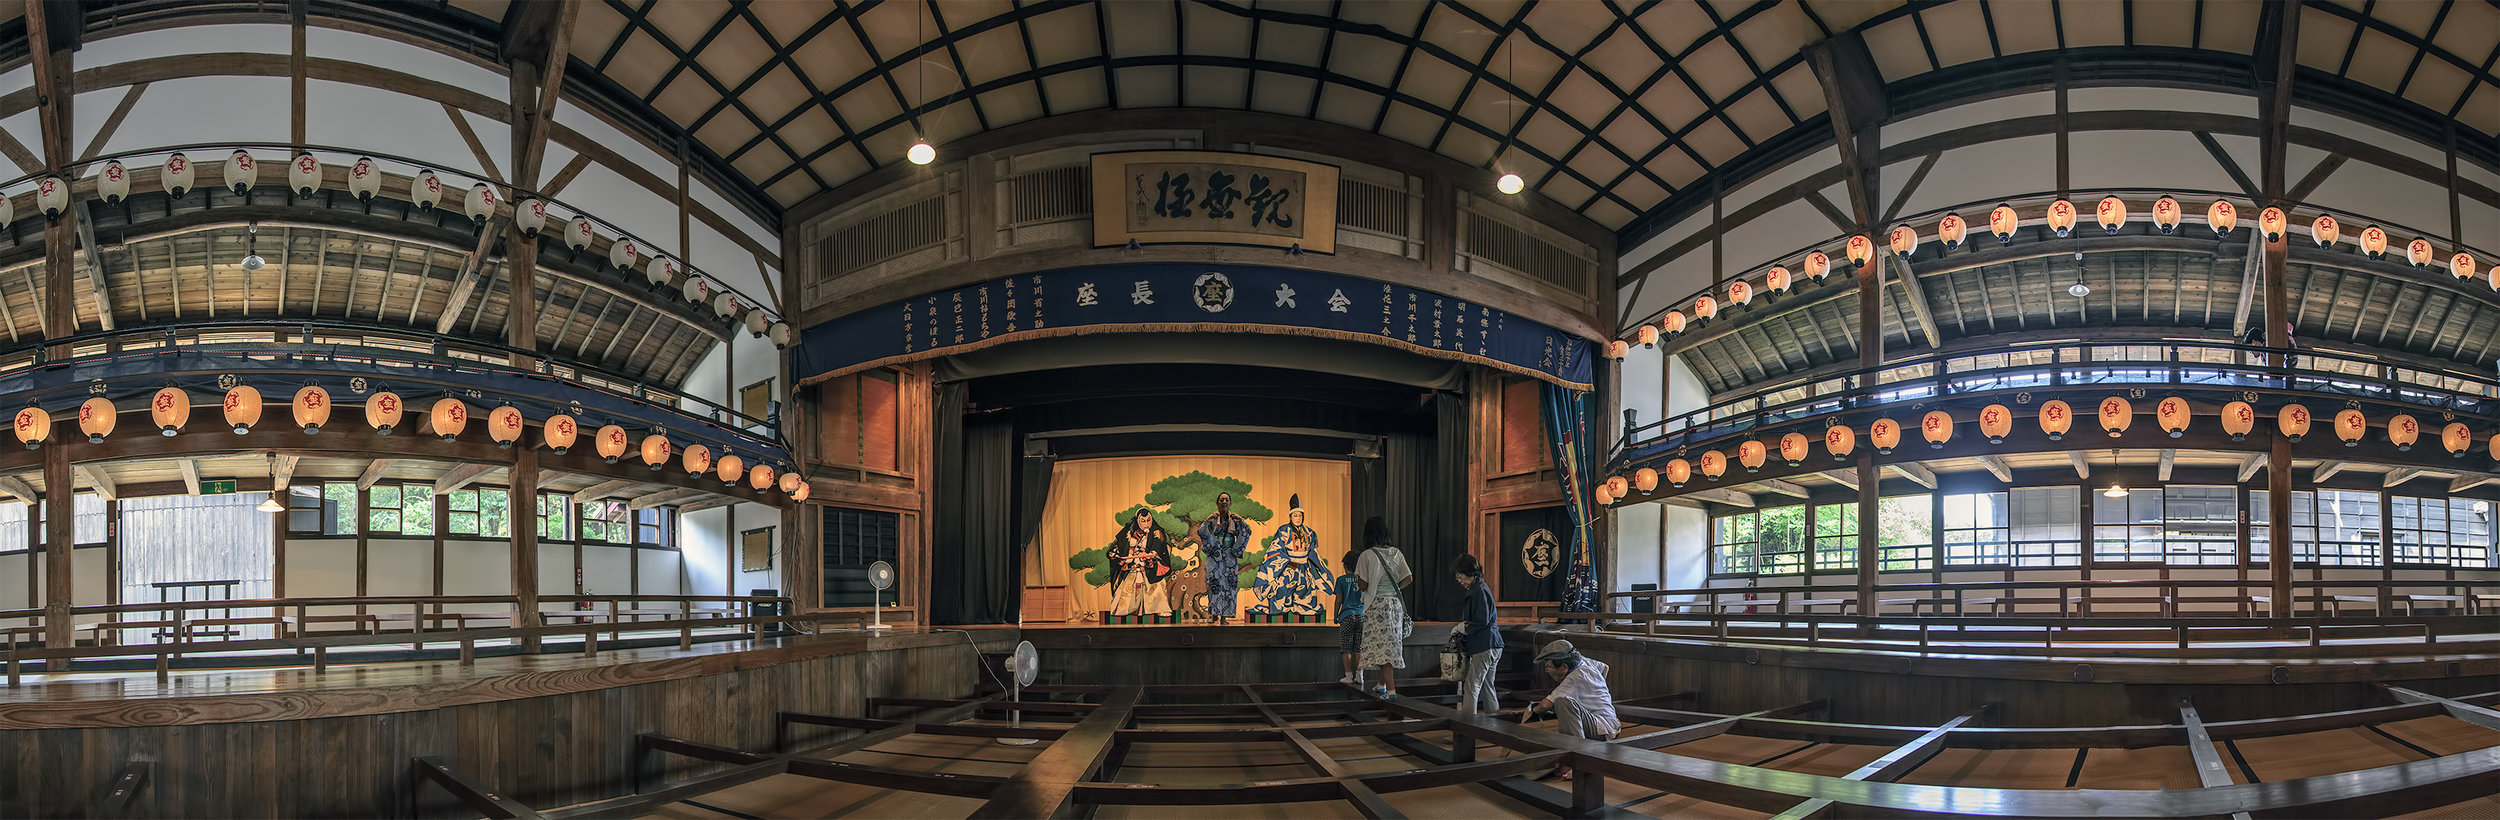 138_3900-RAW-photomerge-panorama-Kabuki-Theater-Kurehaza-呉服座-Meiji-Mura-明治村.jpg